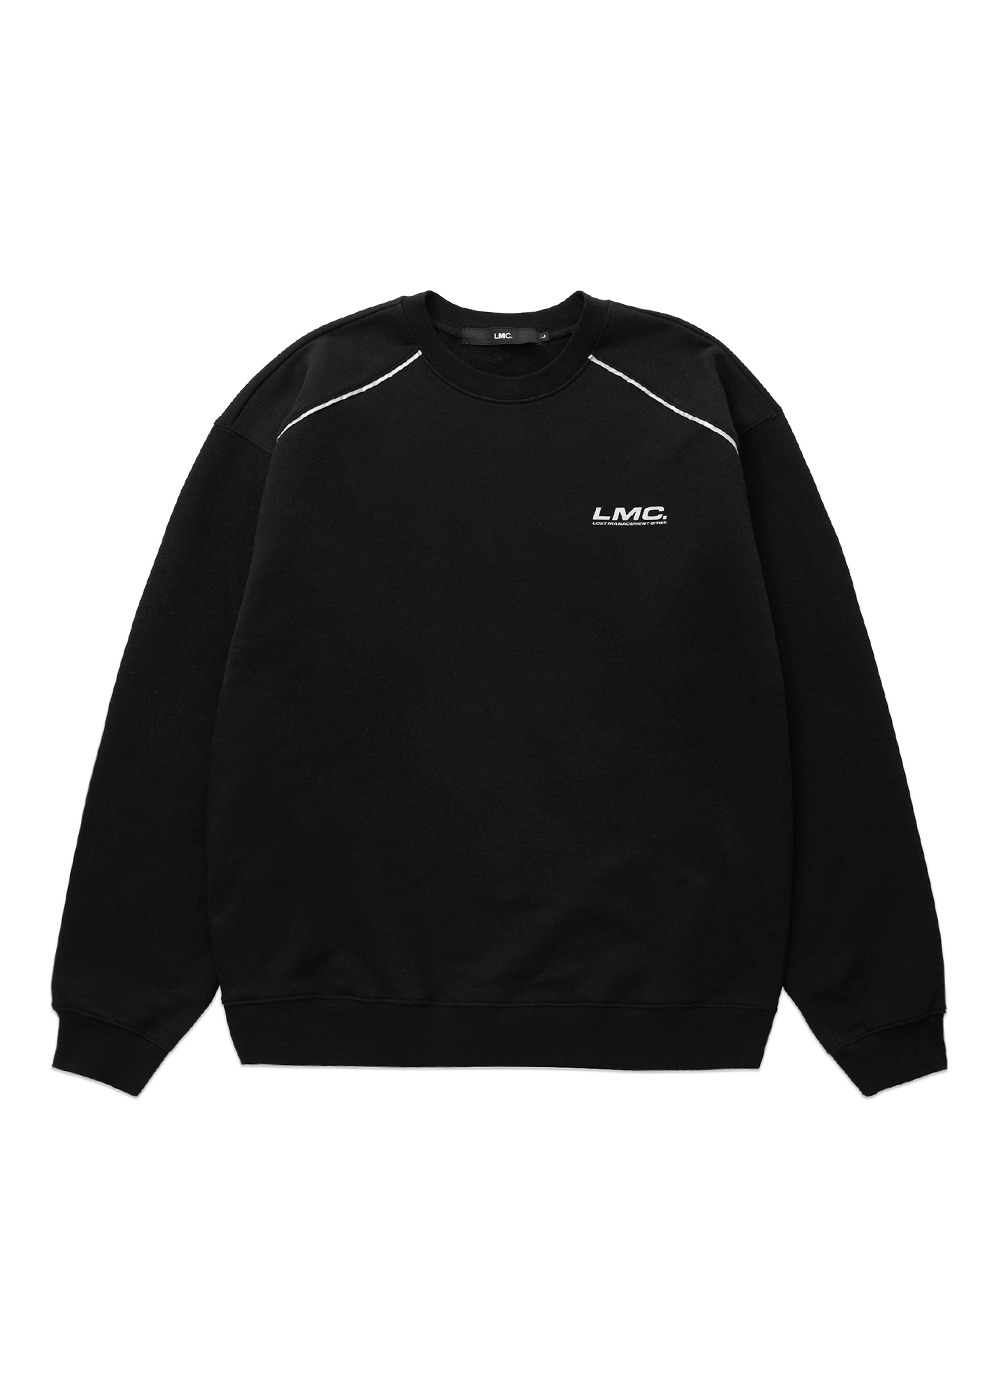 LMC REFLECTIVE APPLIQUE SWEATSHIRT black